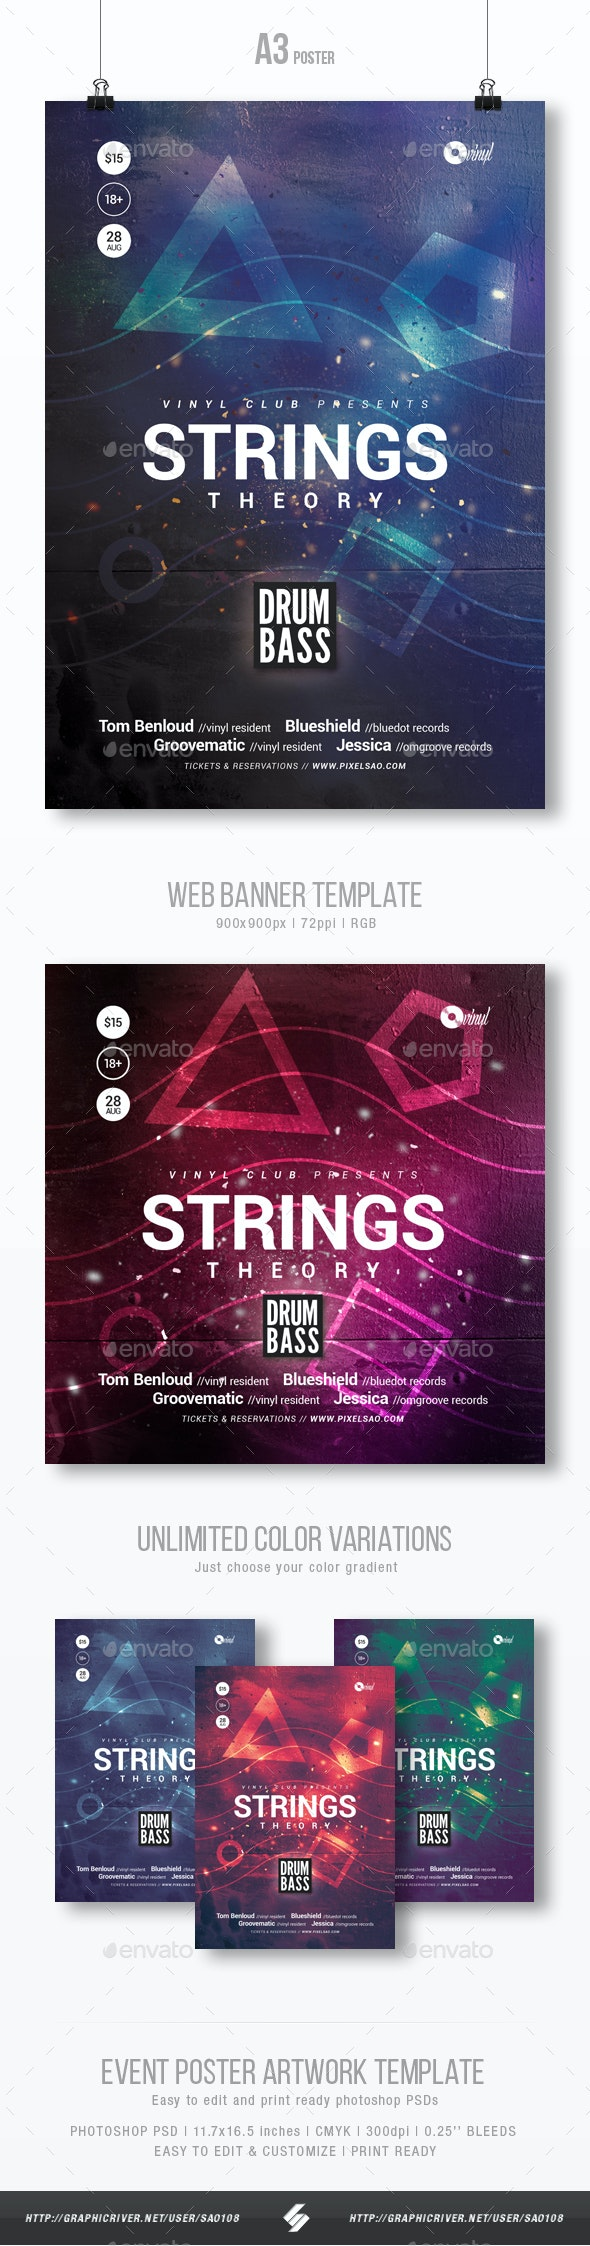 Strings Theory - Progressive Party Flyer / Poster Template A3 - Clubs & Parties Events